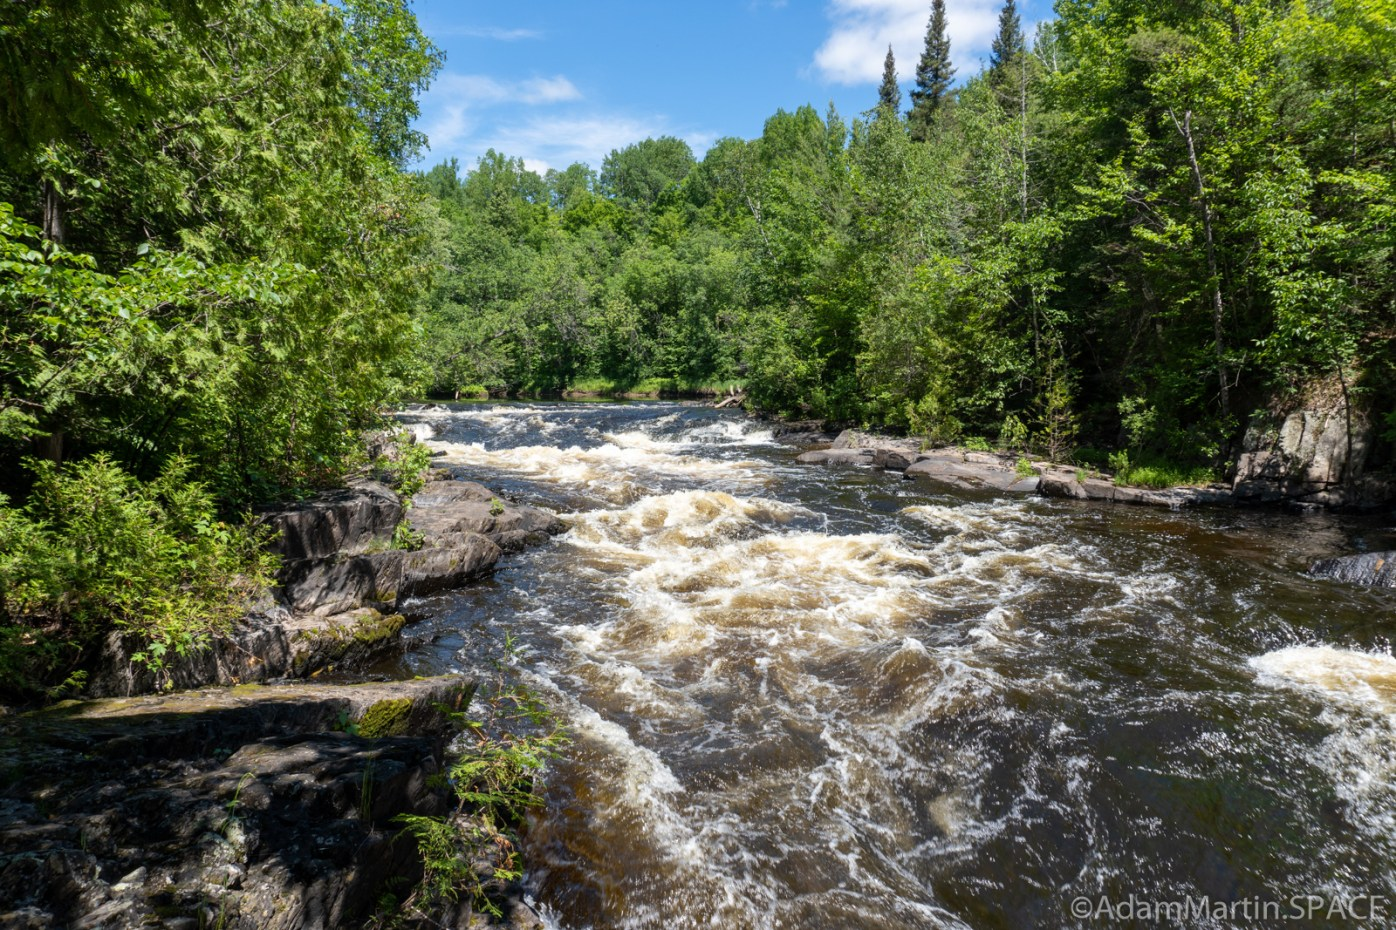 LaSalle Falls - Upstream view of falls/rapids